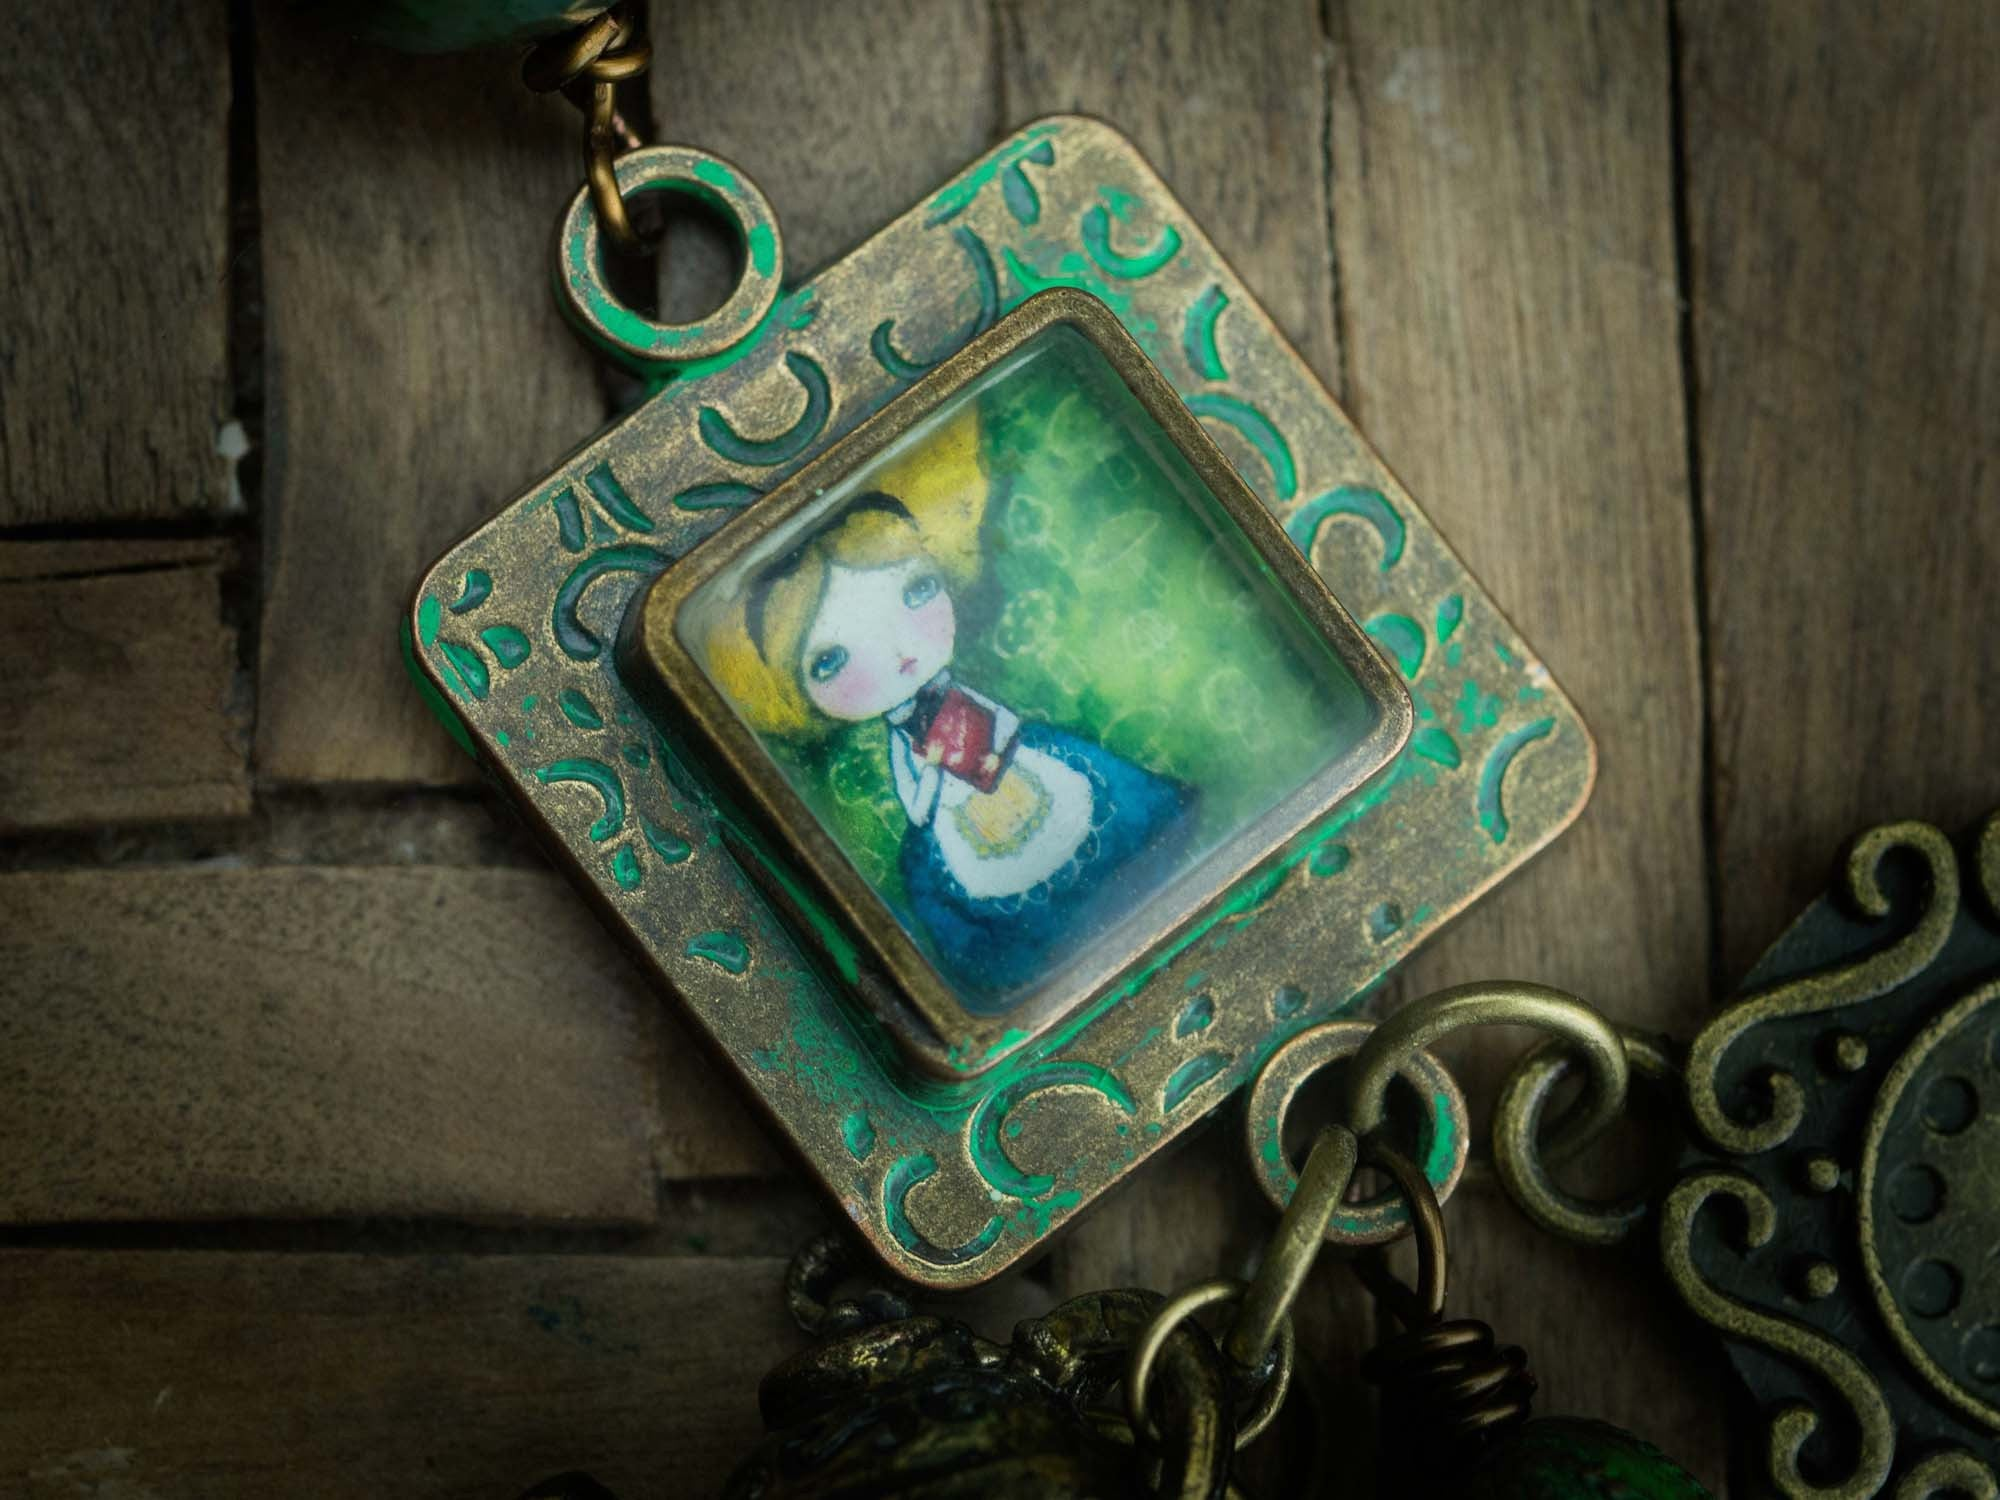 Danita's Alice in Wonderland mixed media painting lives on this square handmade pendant.